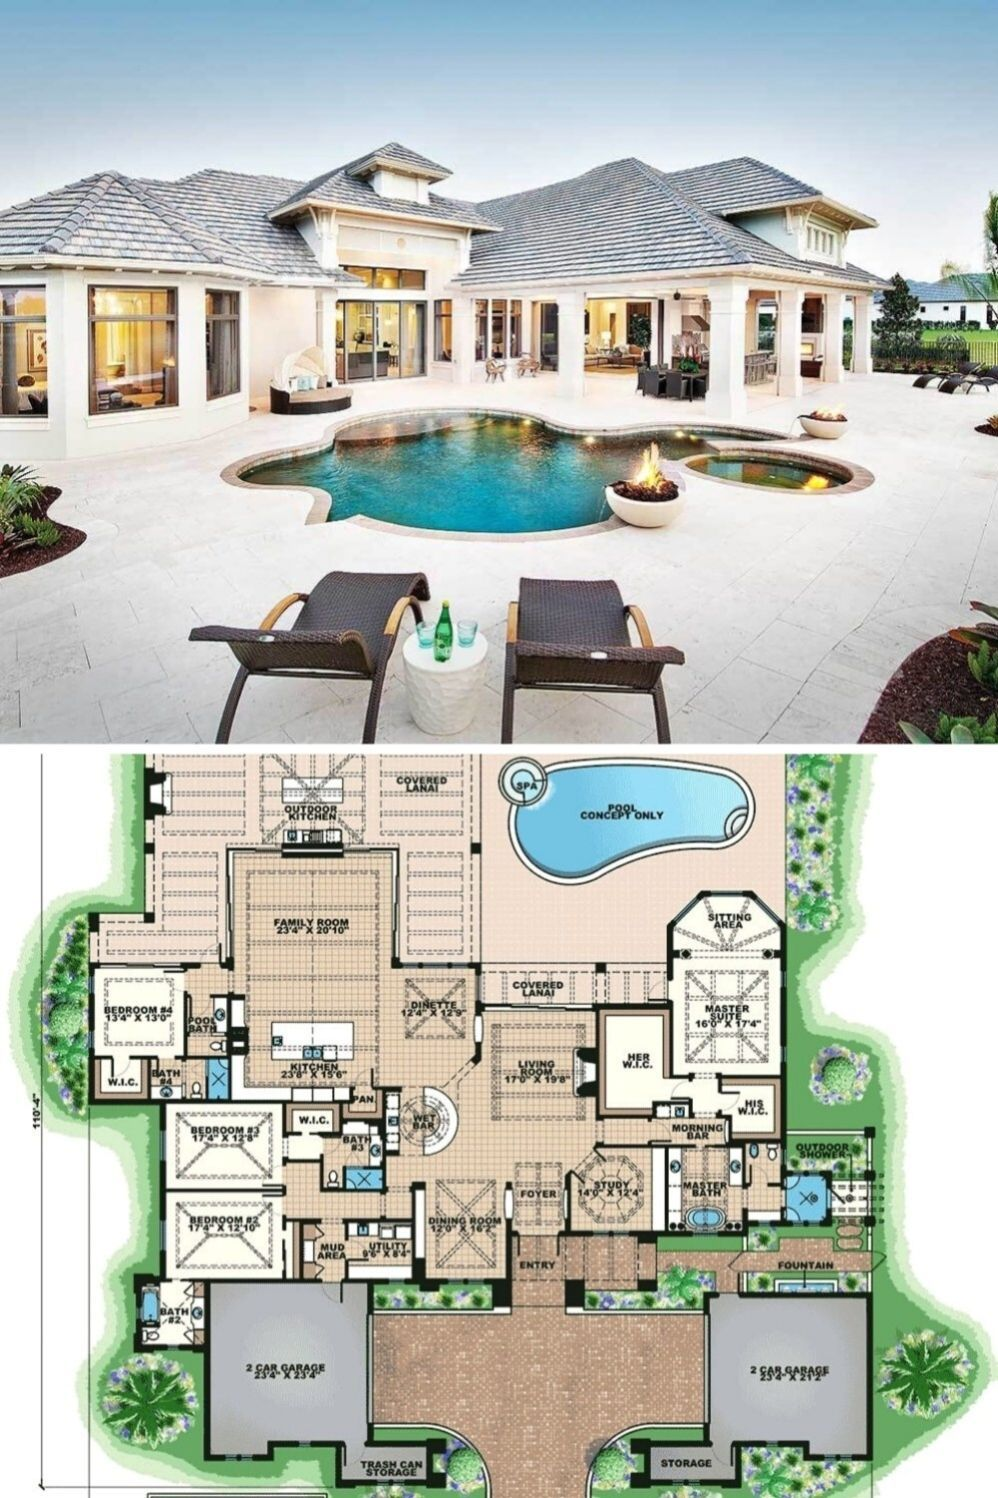 Single Story 4 Bedroom Luxurious Mediterranean Home Floor Plan Florida House Plans House Plans Mansion Luxury House Floor Plans